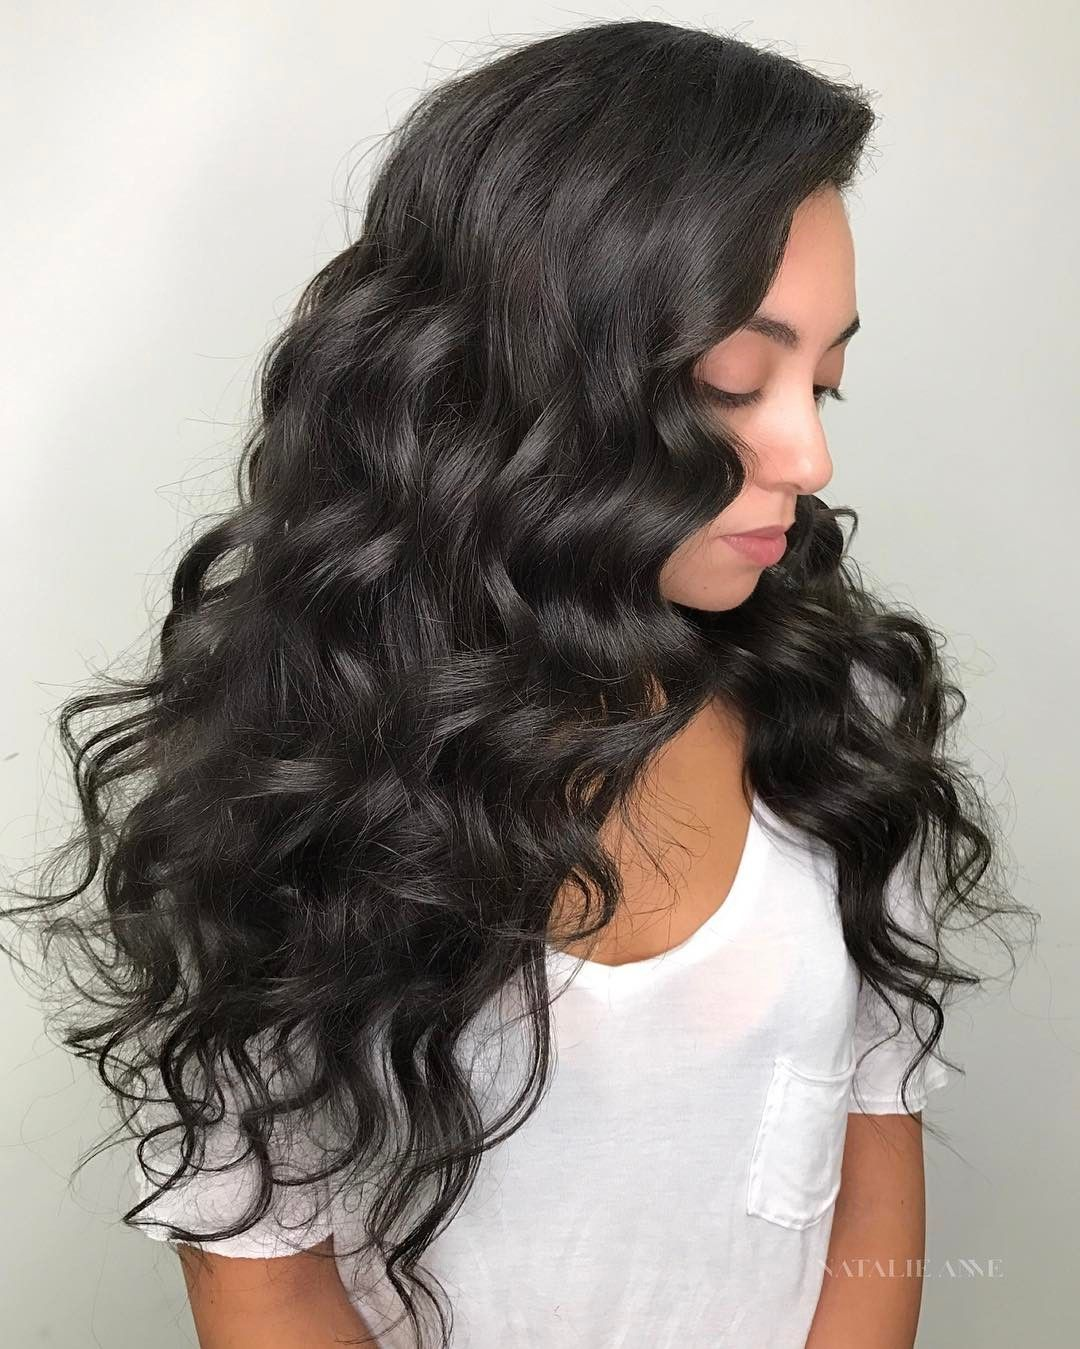 Perfect Swift Waves Looks in 2020 Natural wavy hair